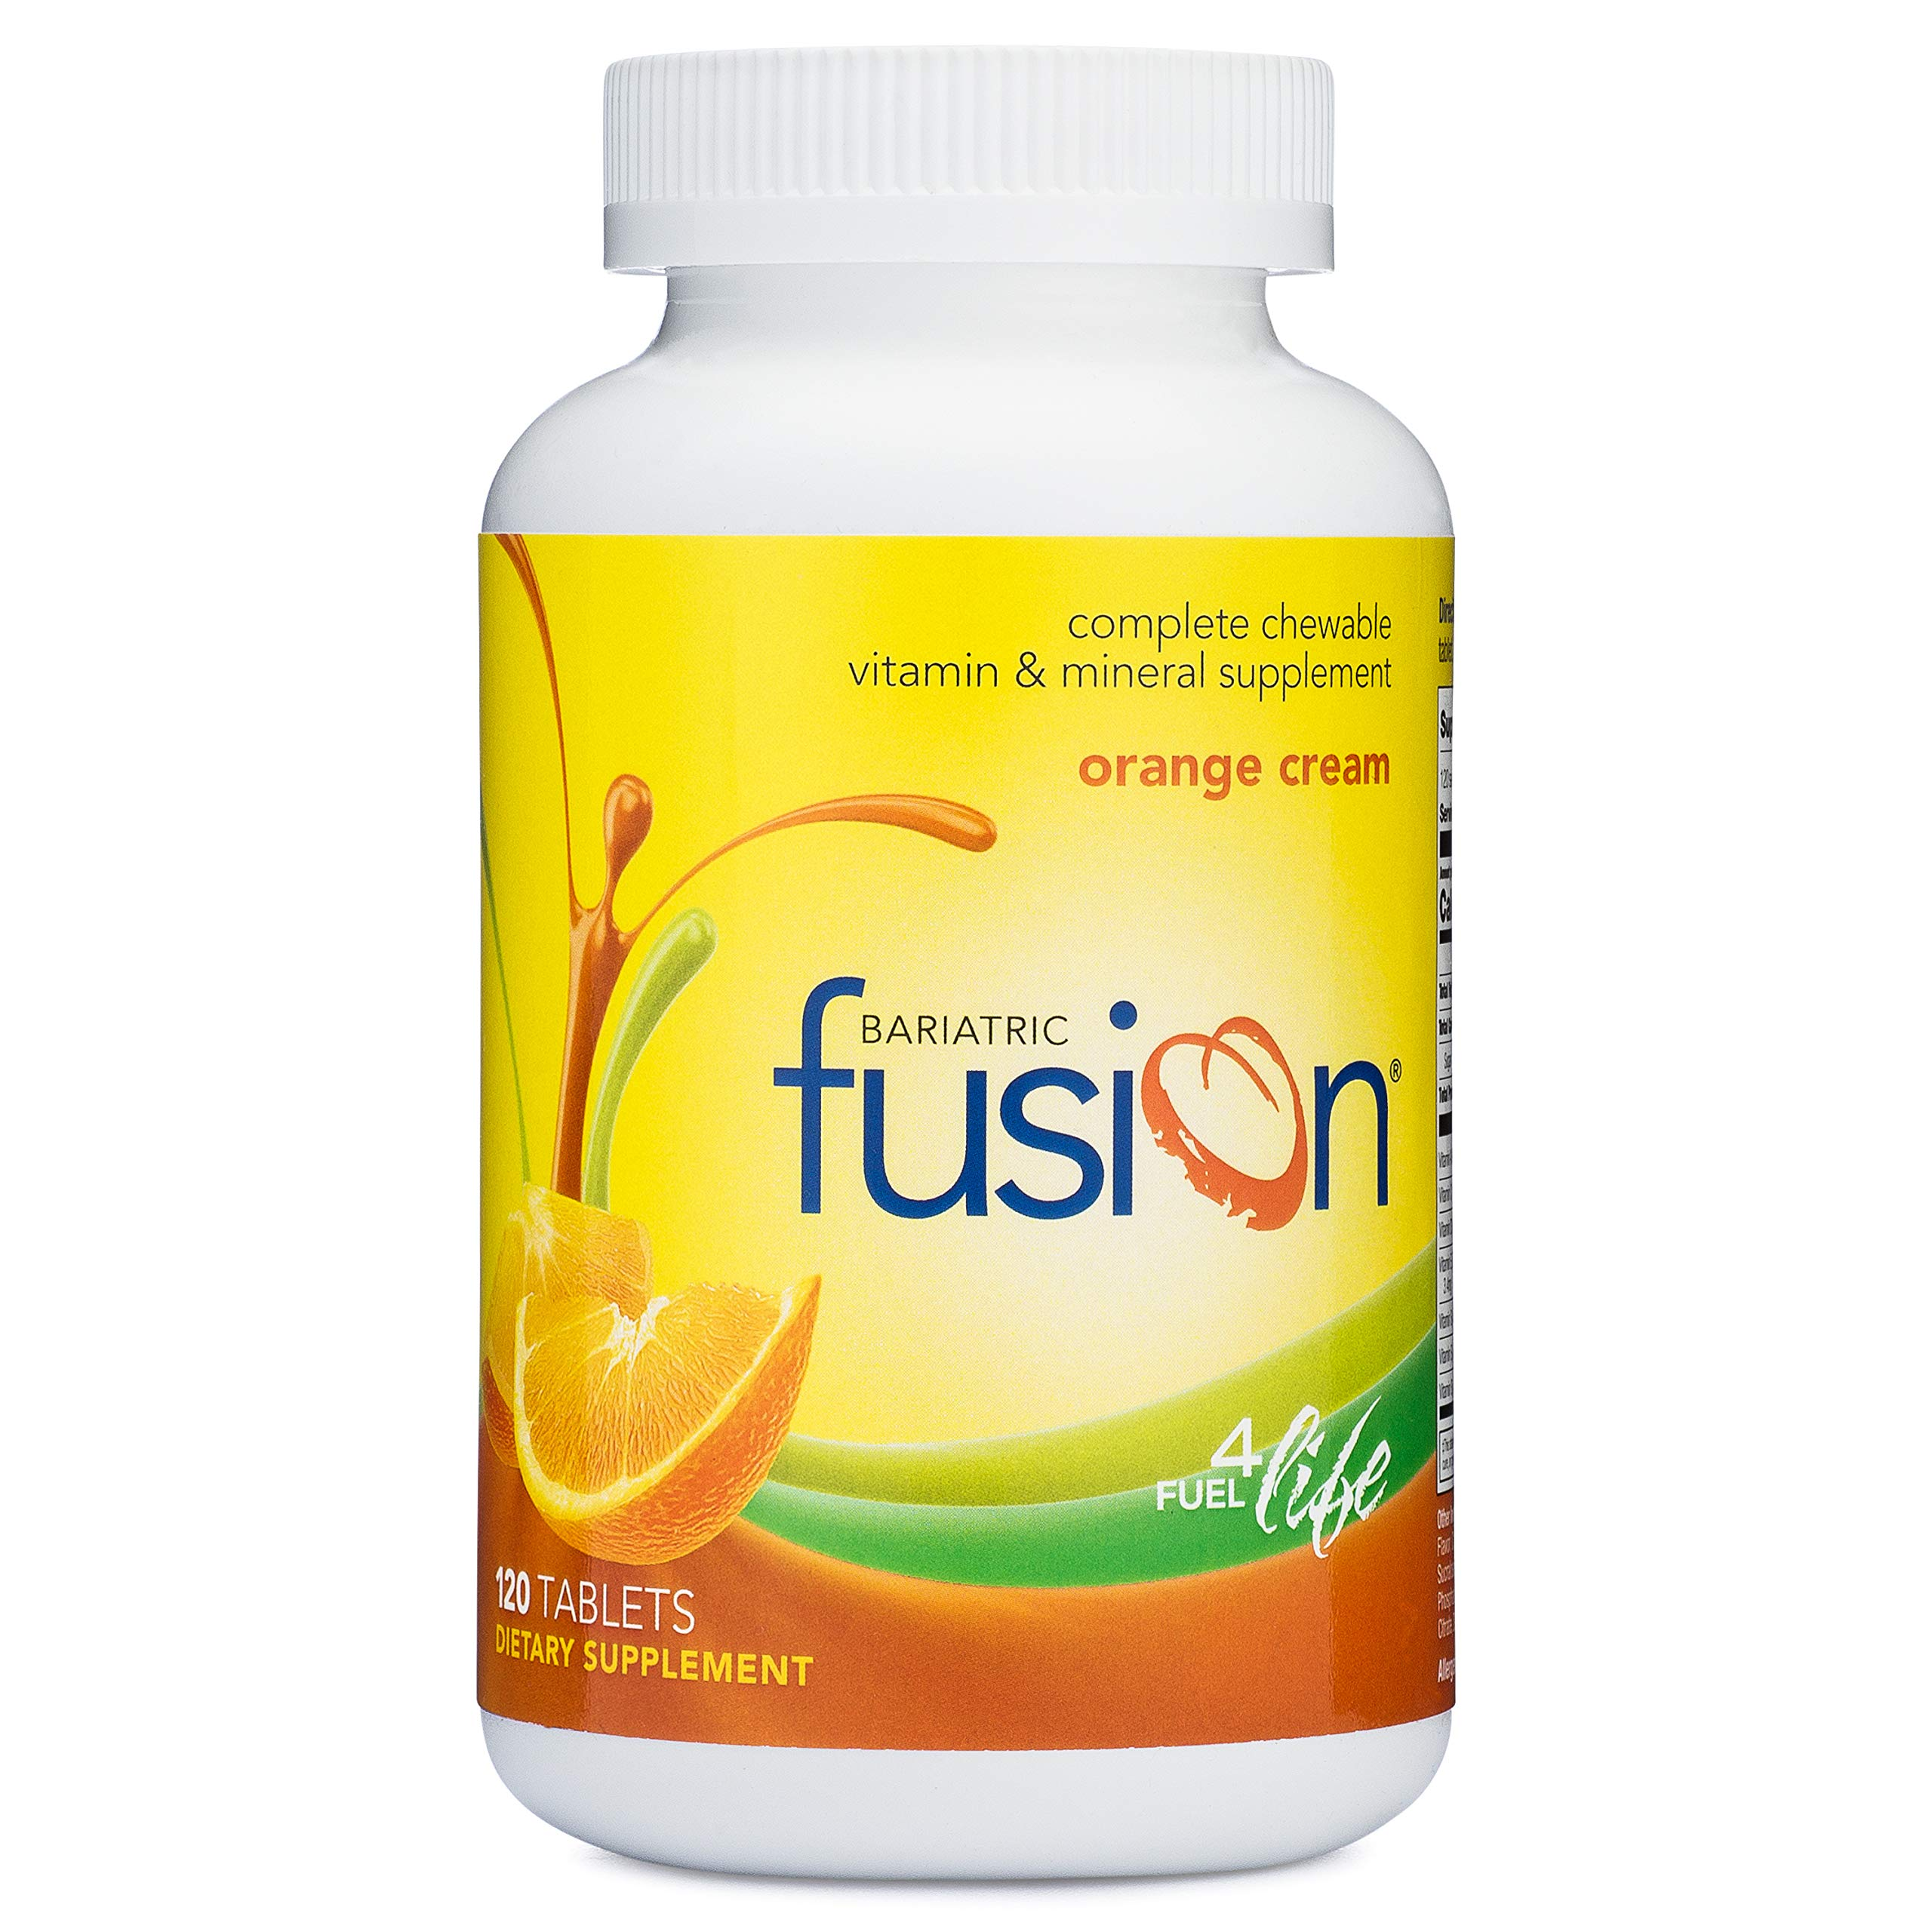 Bariatric Fusion Complete Chewable Multivitamin and Mineral Supplement Orange Cream 120 Tablets for Gastric Bypass and Sleeve Gastrectomy by Bariatric Fusion